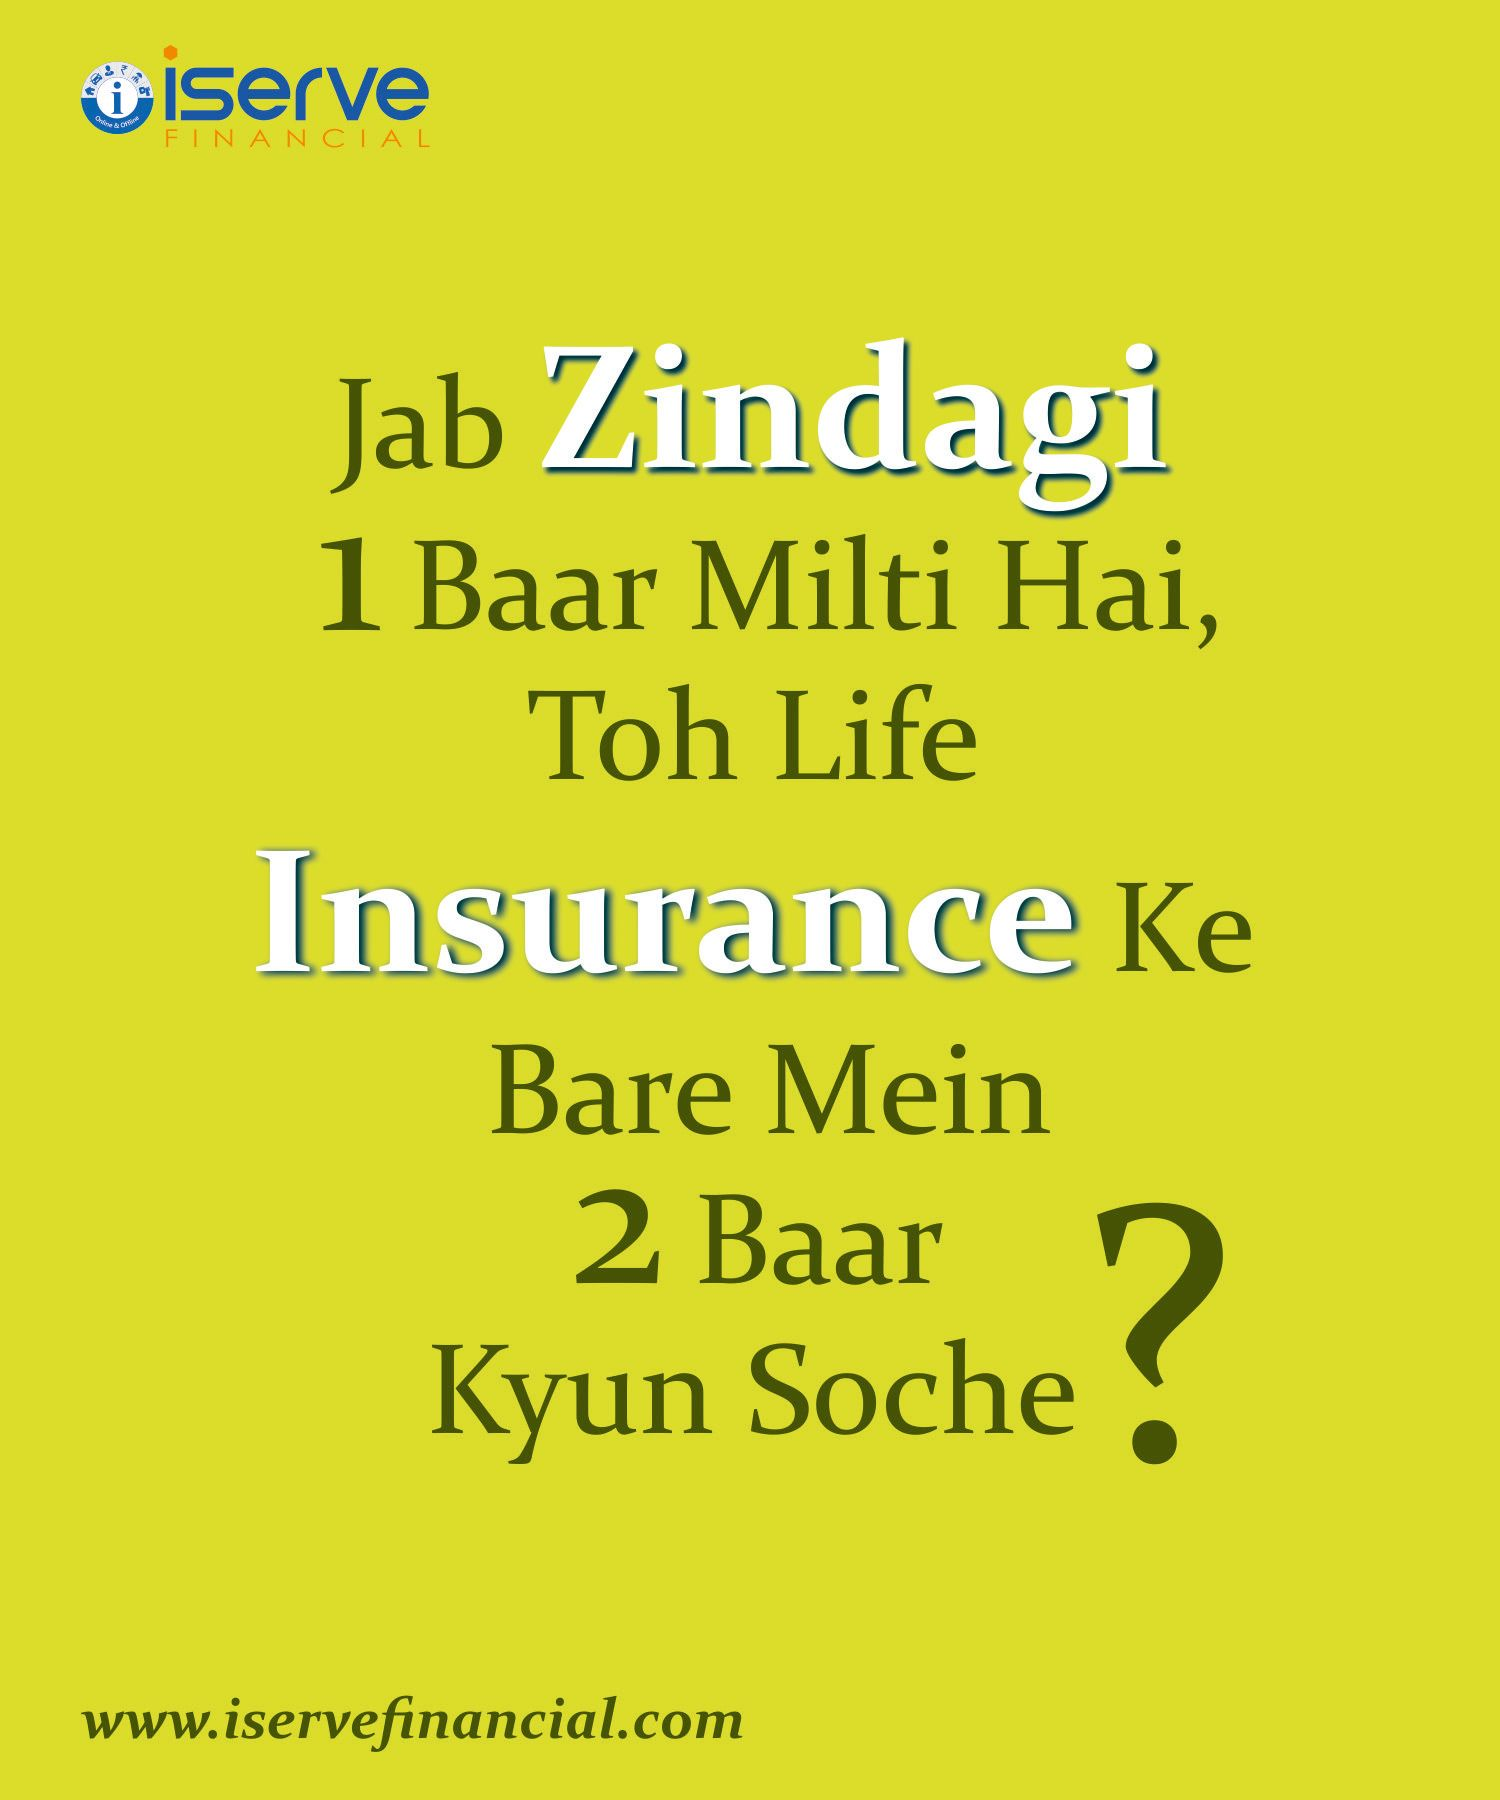 Insurance the safety net for life's unpredictability